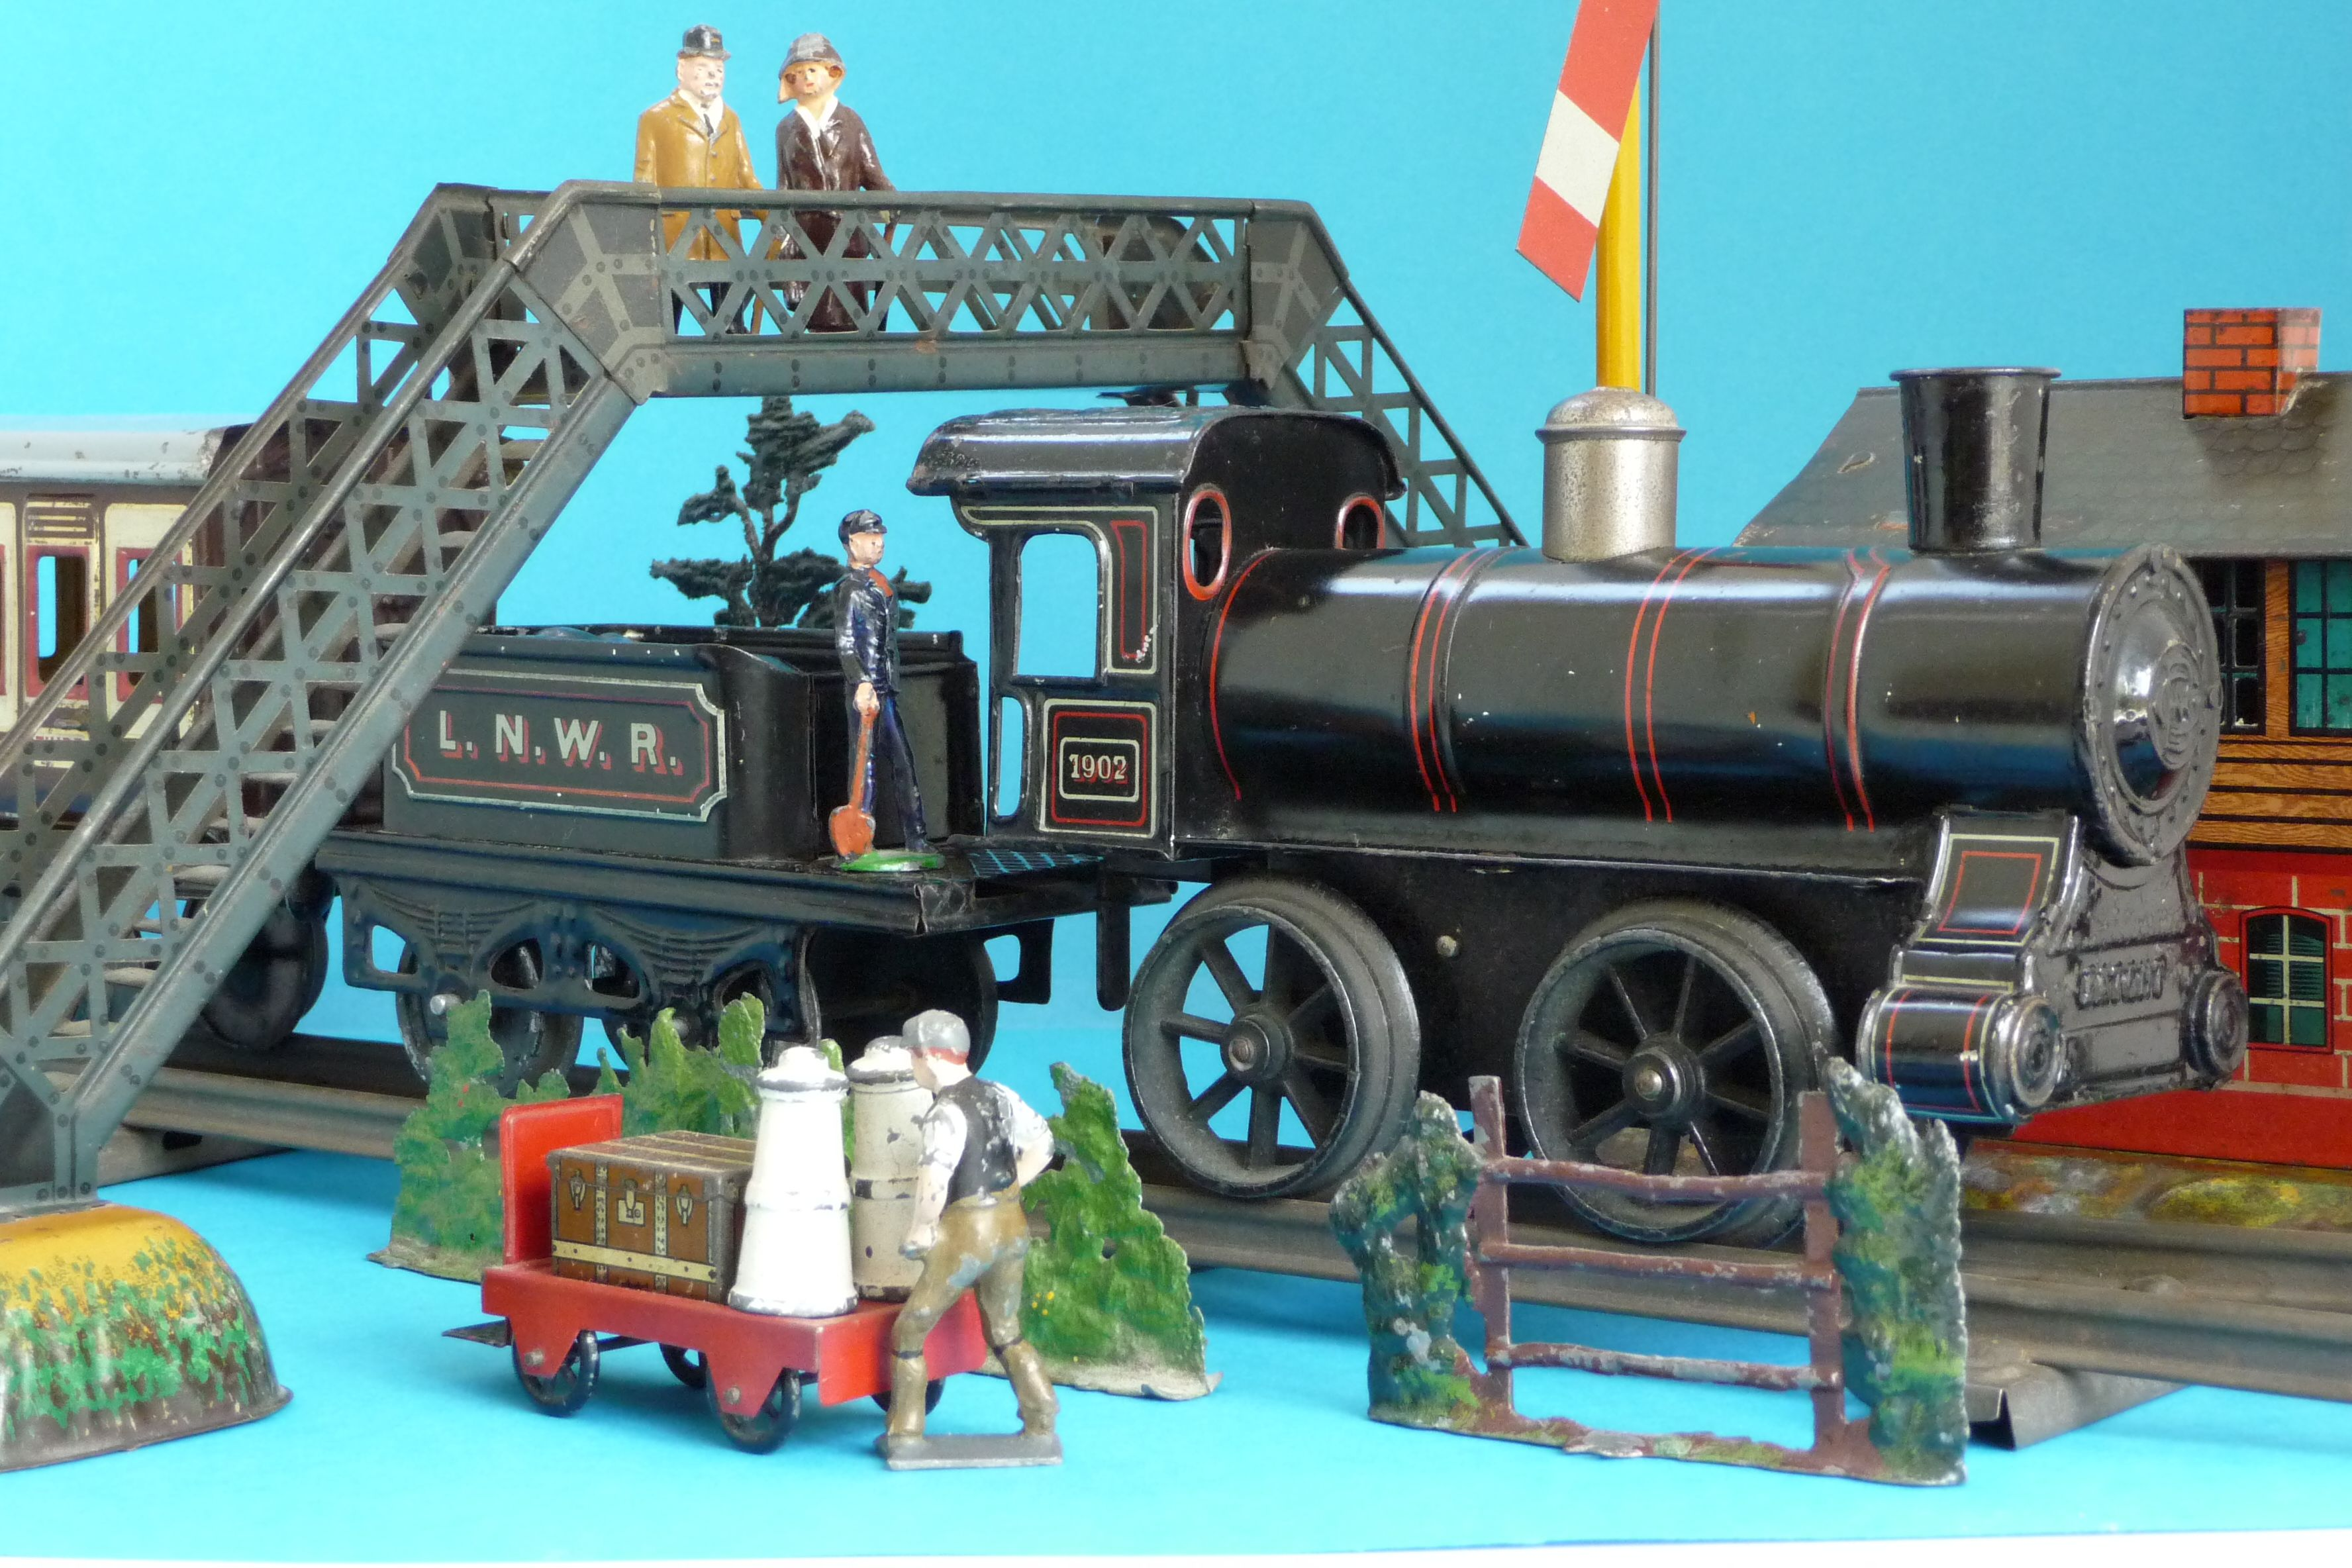 Have collectible toys and trains